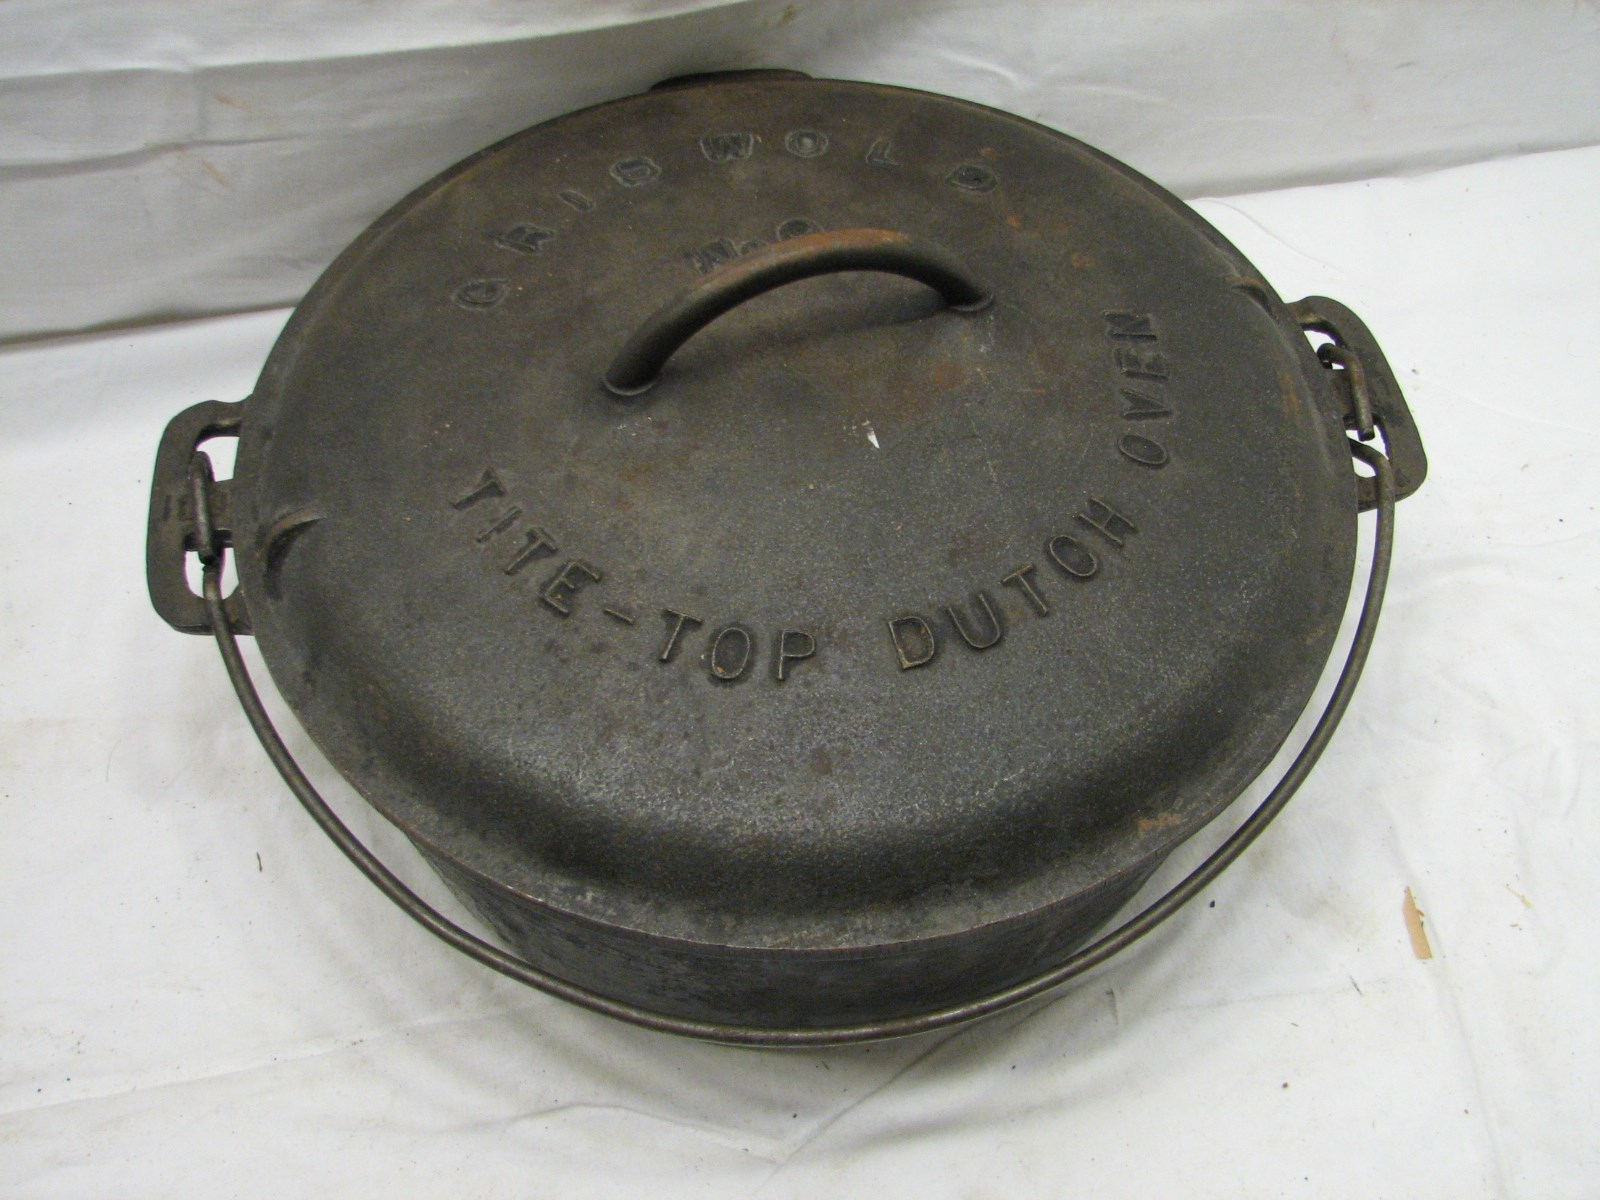 dating griswold cast iron pans Take a look at your cast-iron muffin pans, dutch ovens, roasters, bread molds, waffle irons and kettles to see whether they're in good shape  griswold, wagner and erie are the names you'll .